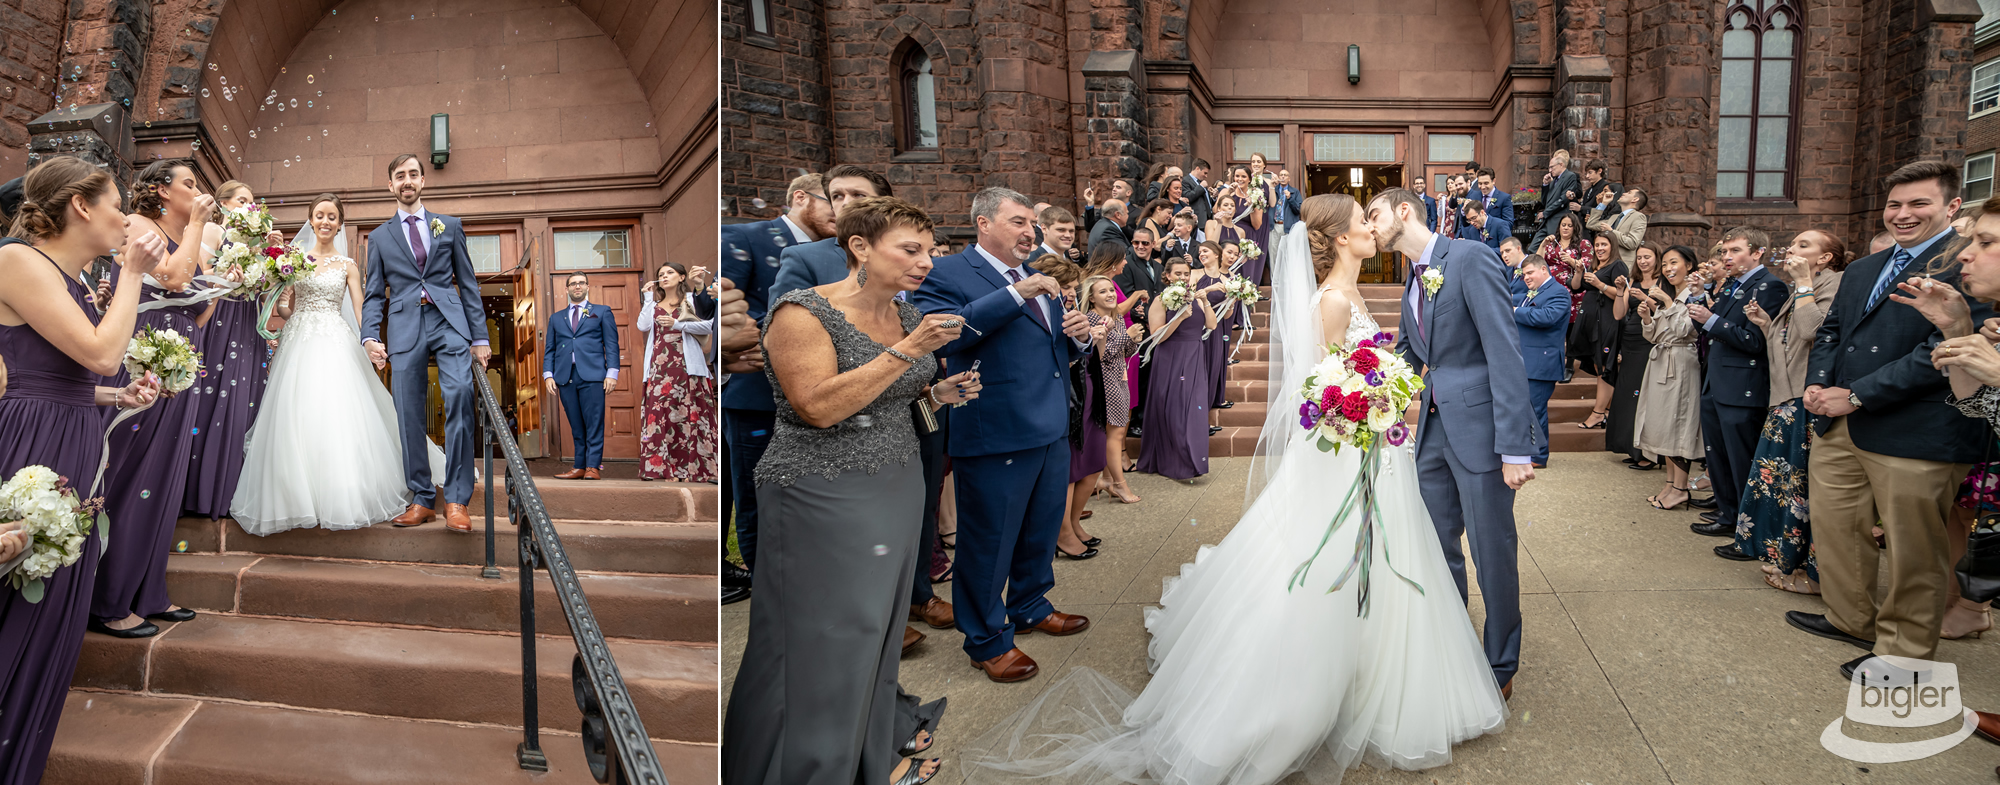 20181006_-_21_-_Michelle_&_Evan_Kiernan_Plaza_Wedding